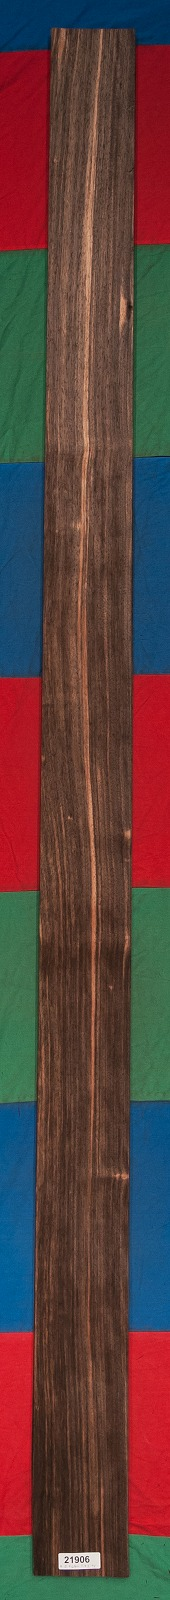 AAA Quartersawn Ebony (Macassar) Veneer Lot